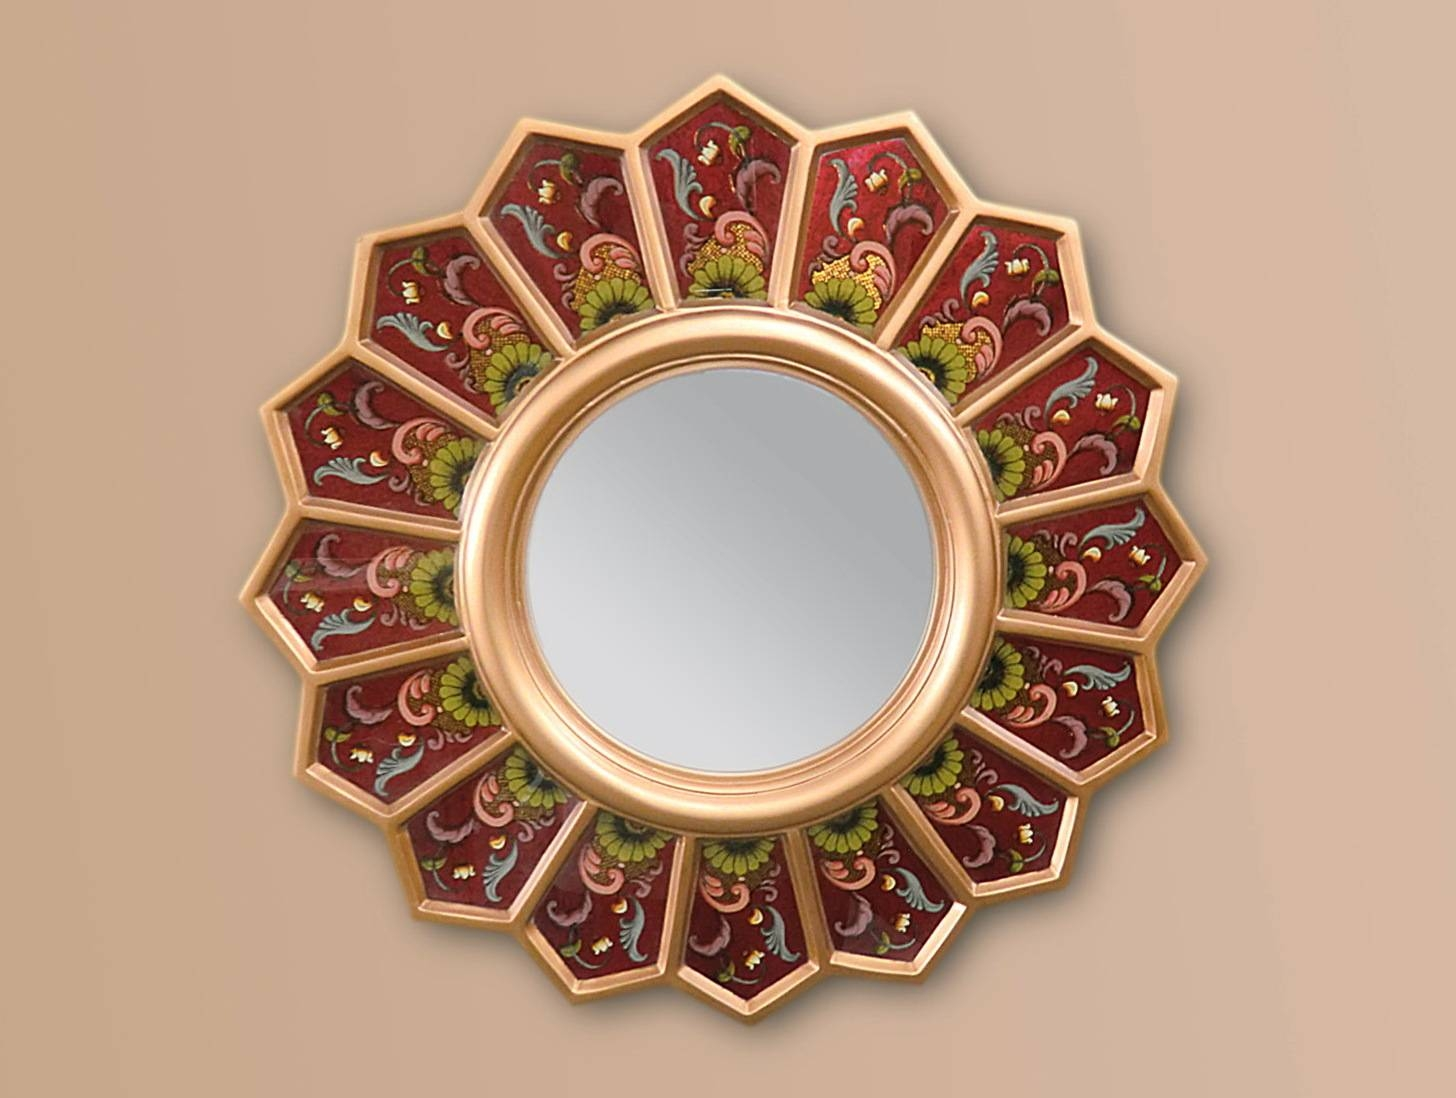 Nice Small Round Mirrors Wall Art Home Design Ideas Photo In Latest Small Round Mirrors Wall Art (Gallery 11 of 20)